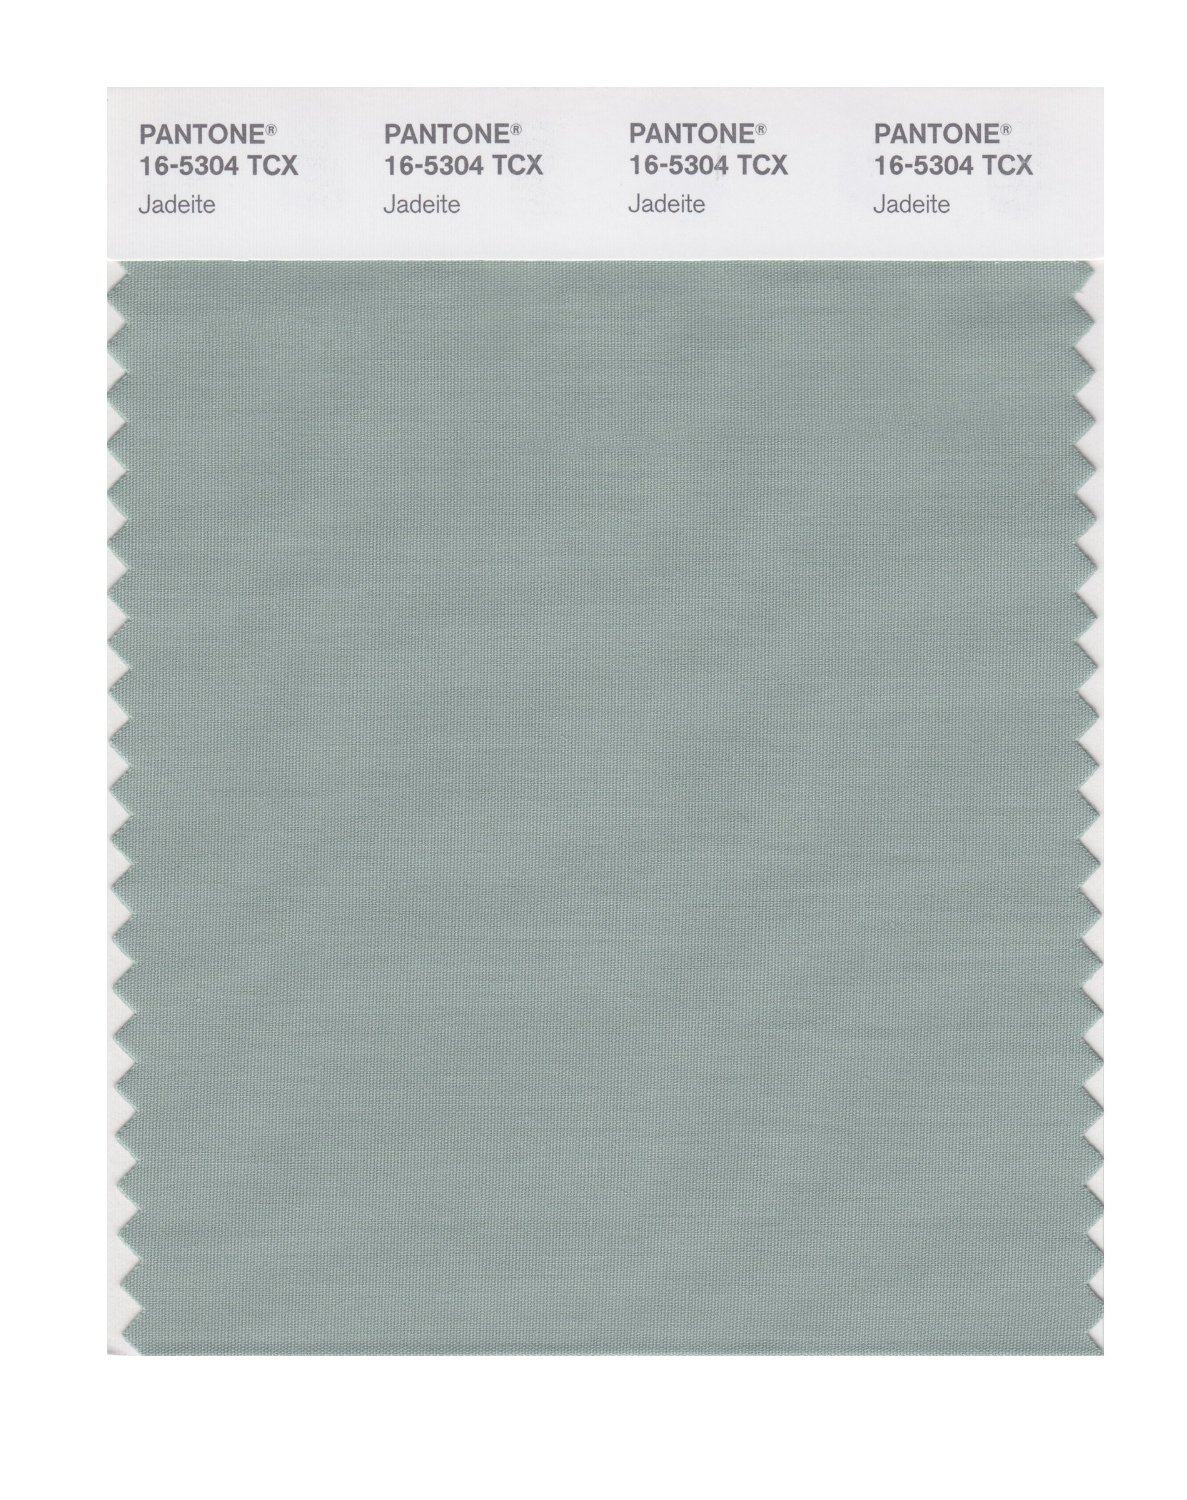 Pantone Smart Swatch 16-5304 Jadeite